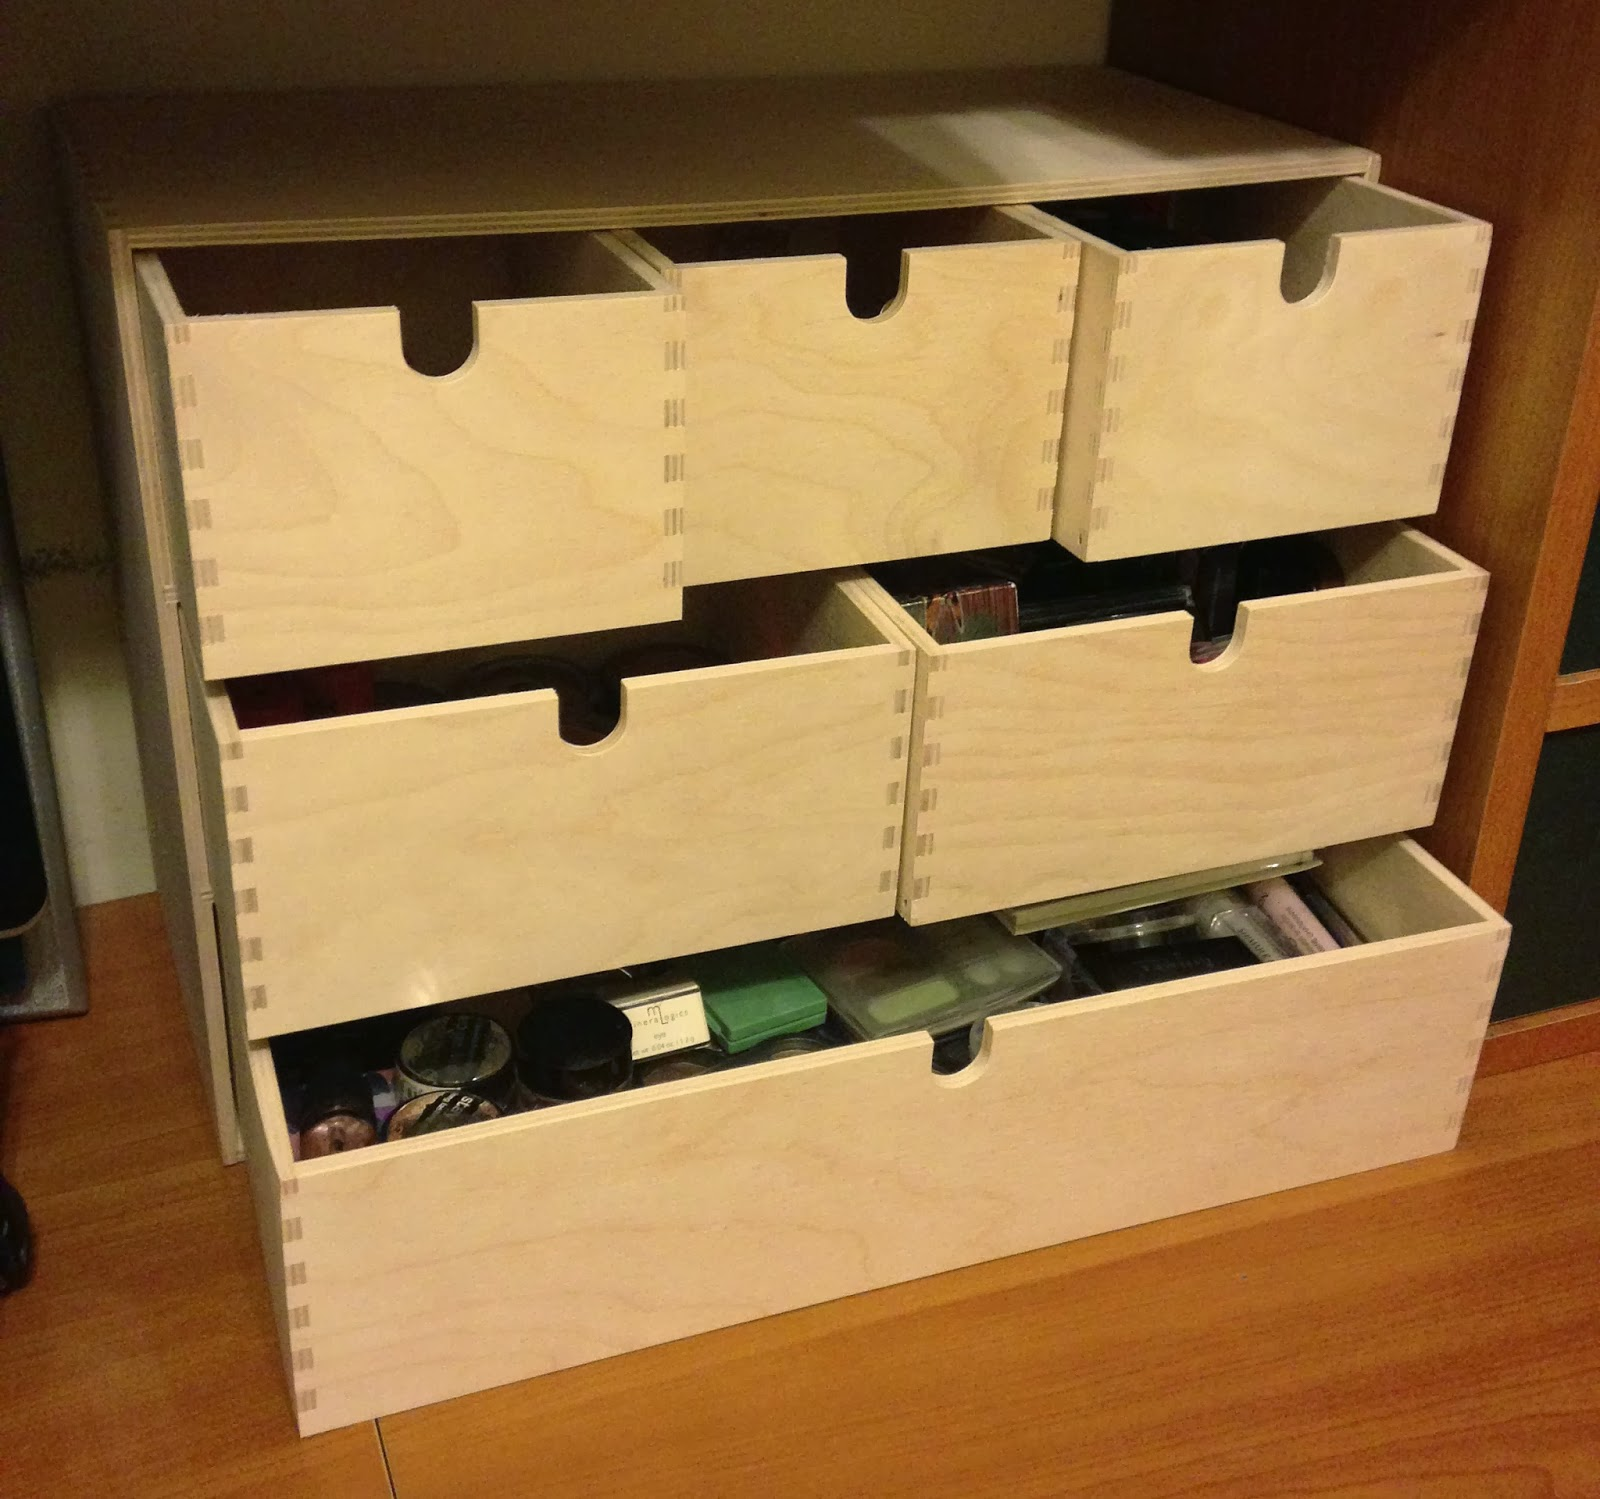 You Can Check Out The Selection Of Chests In Store At Ikea